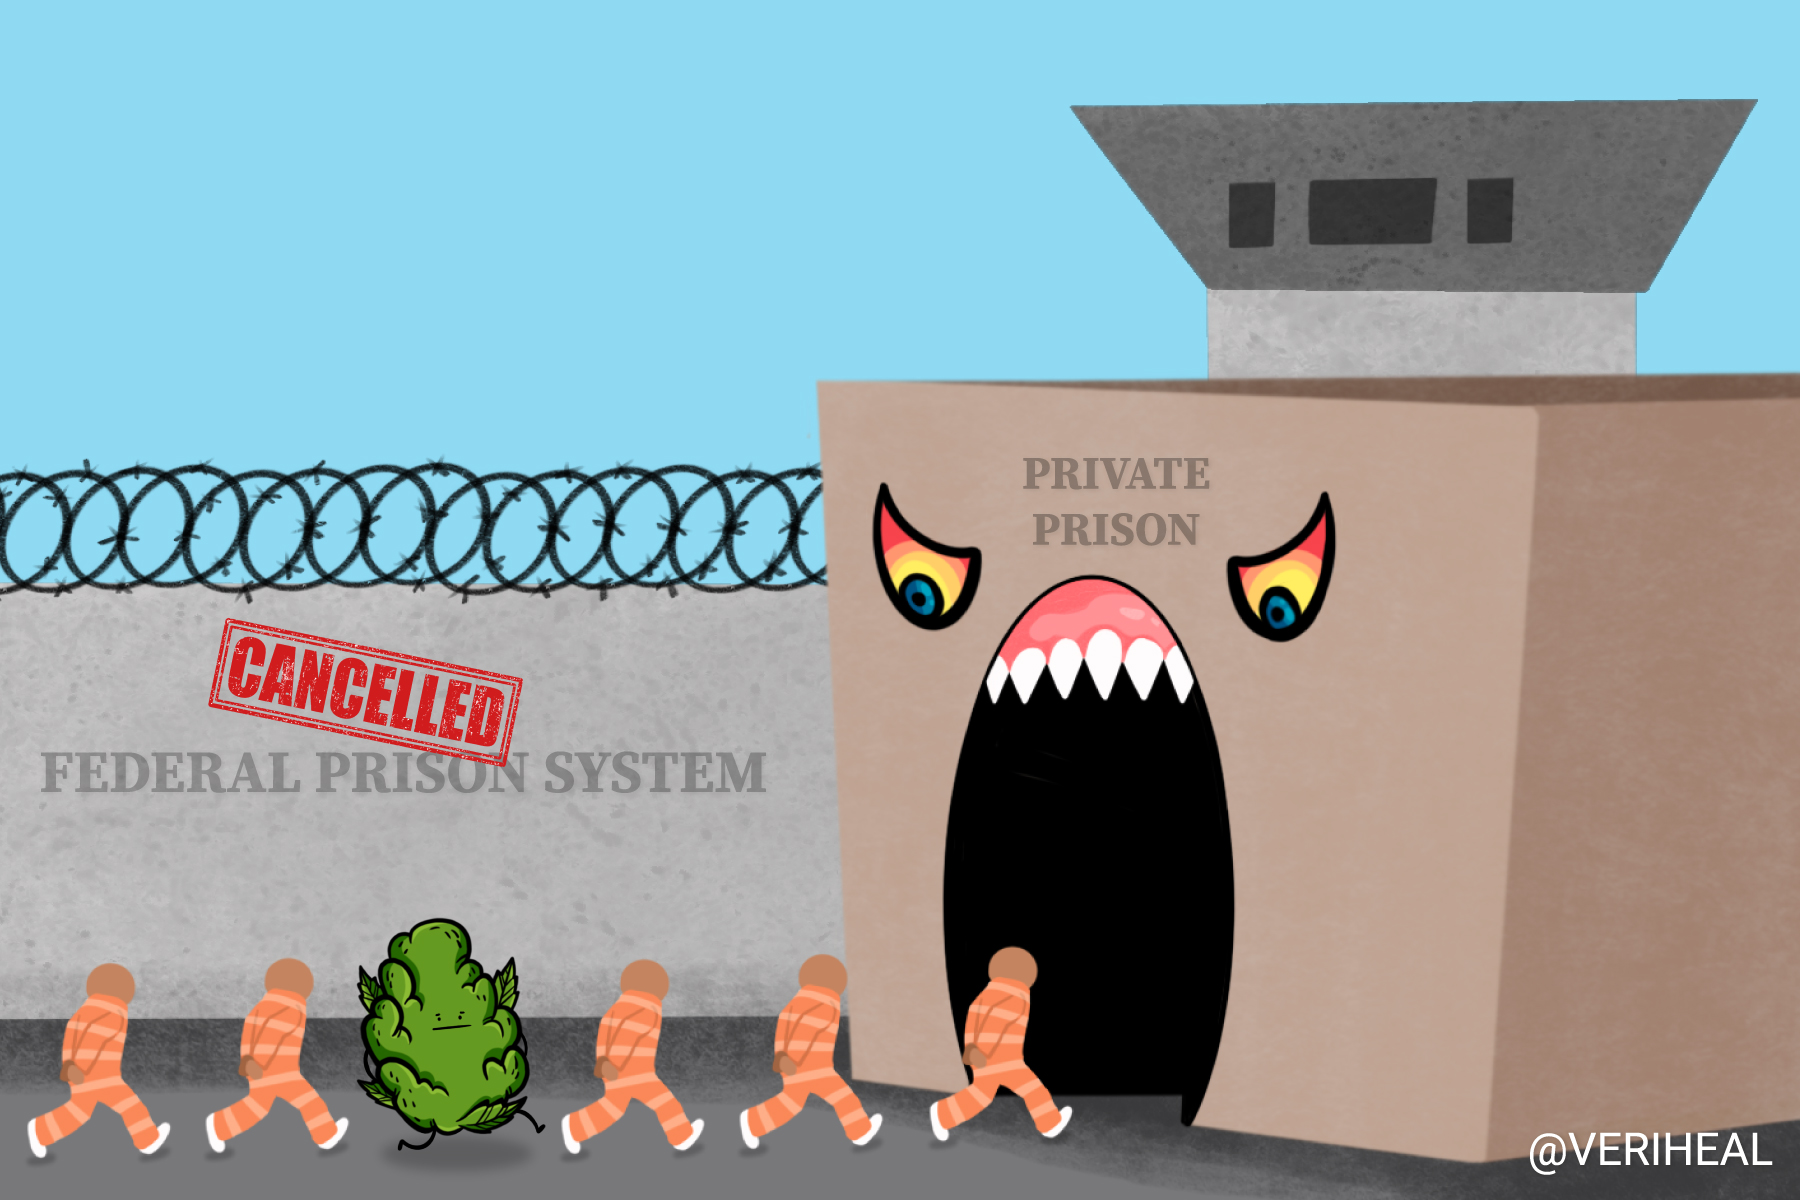 President Biden Severs Contracts With Private Prisons to Combat Systemic Racism